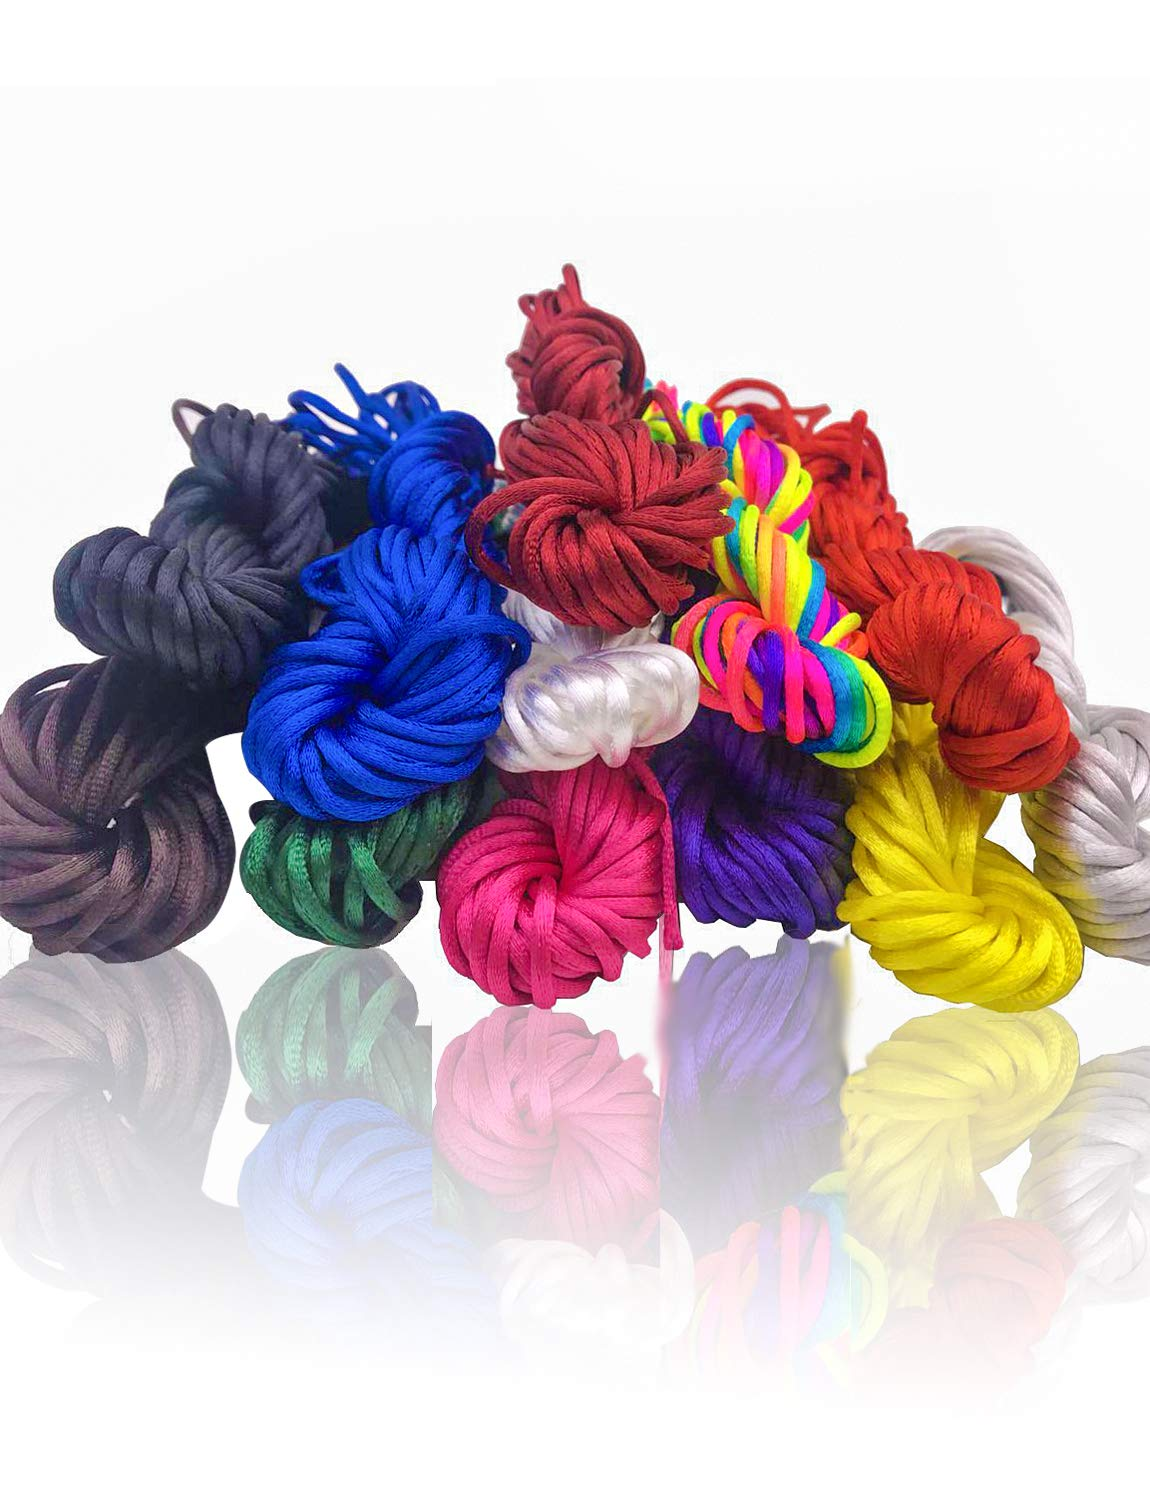 2mm Satin Nylon Trim Cord, Rattail Silk Cord,12 Bundles 120 Yards Assorted Colors Nylon String for Beading Jewelry Making VGoodall 4337027652